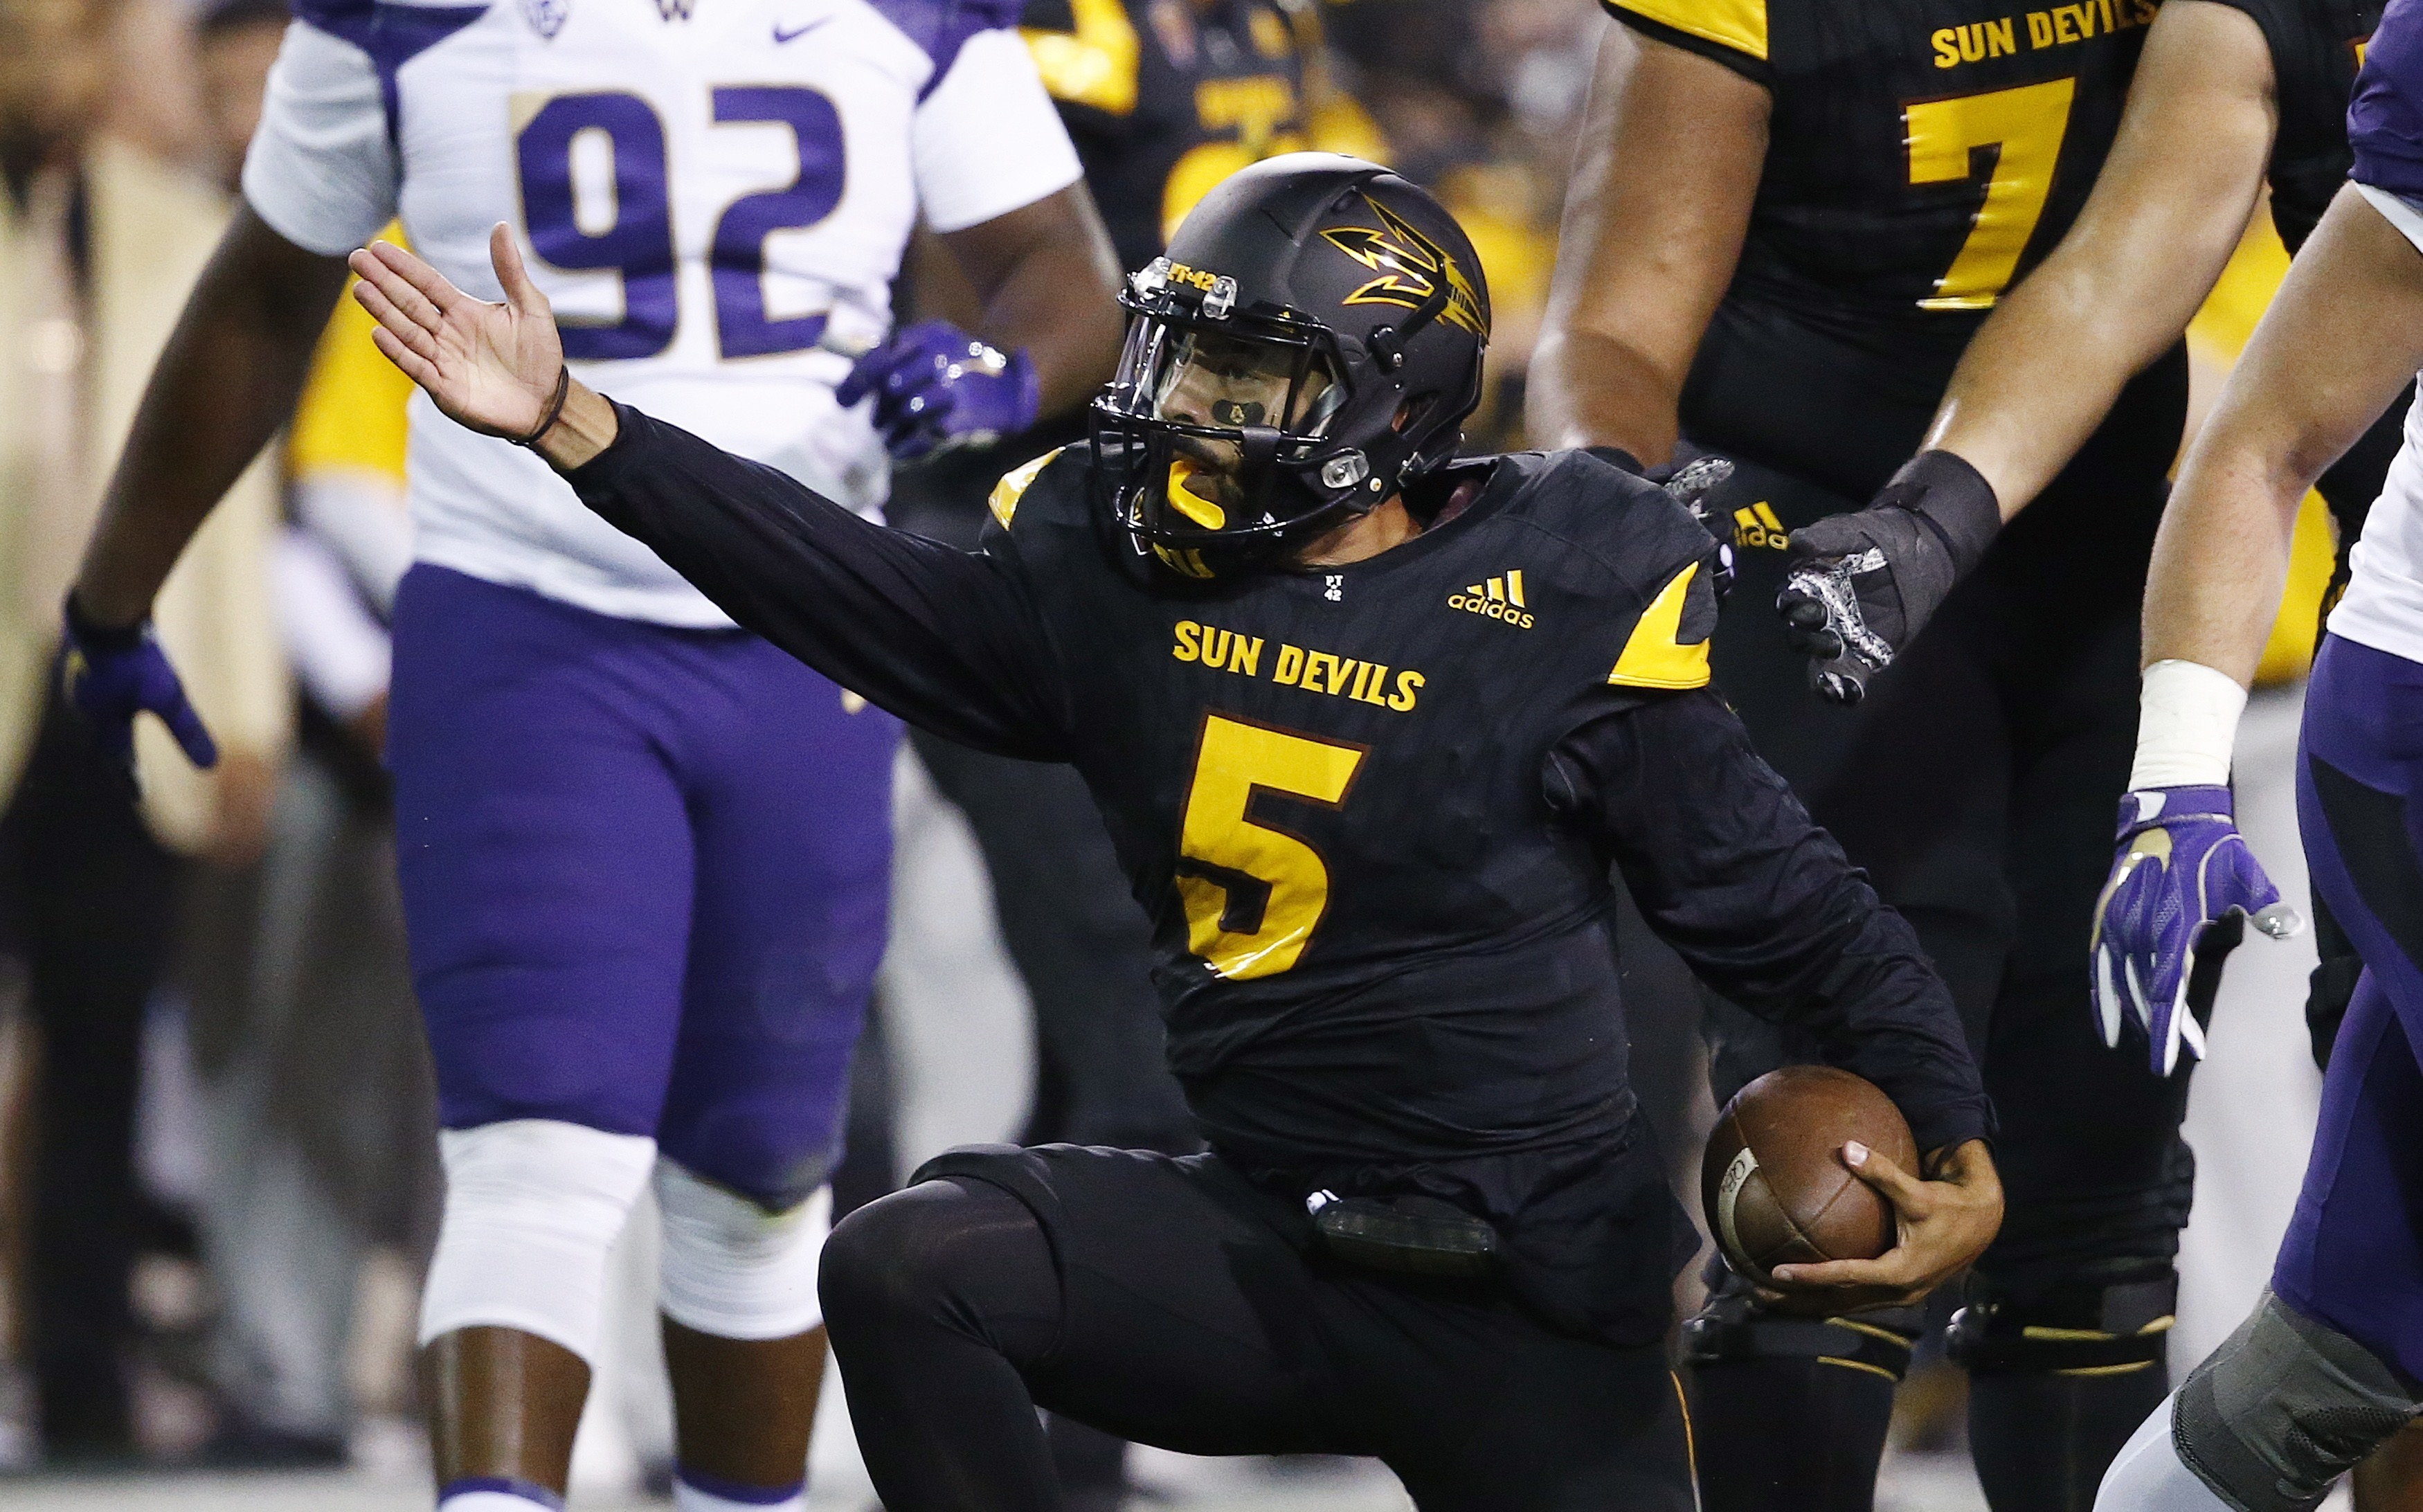 Arizona State quarterback Manny Wilkins (5) signals a first down against Washington during the first half of an NCAA college football game, Saturday, Oct. 14, 2017, in Tempe, Ariz. (AP Photo/Ross D. Franklin)